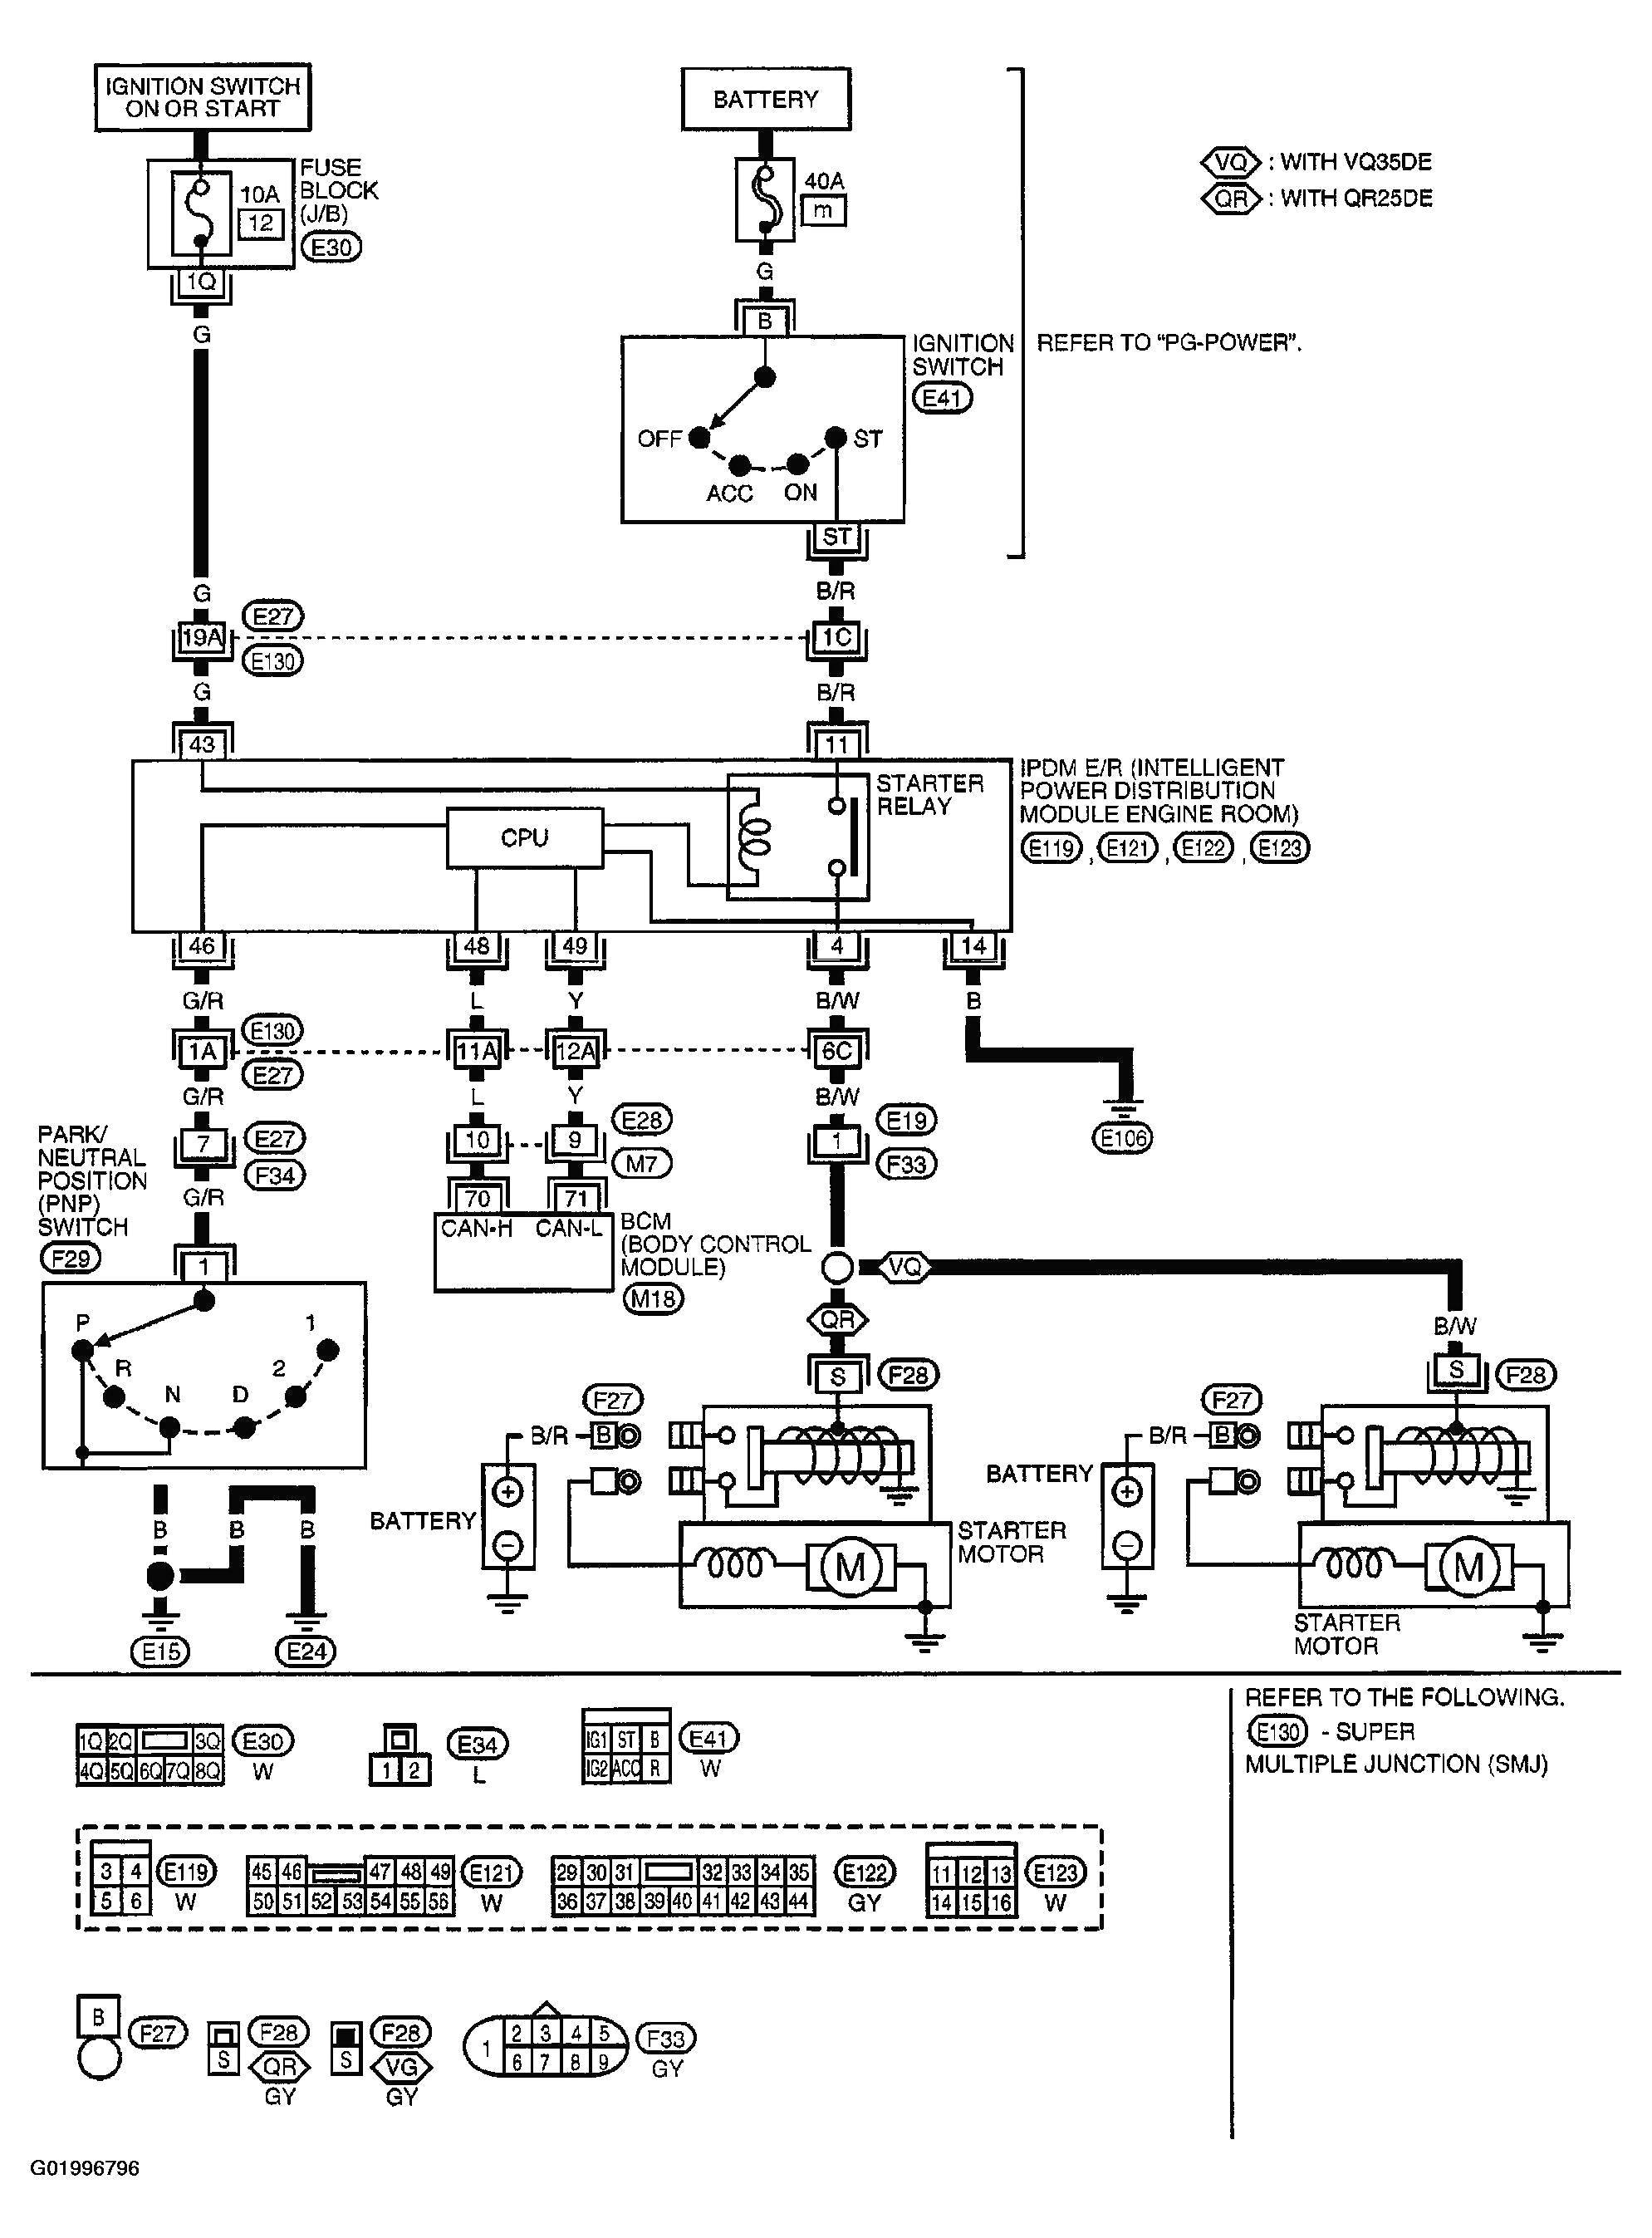 Fuse Box Diagram For Nissan Altima